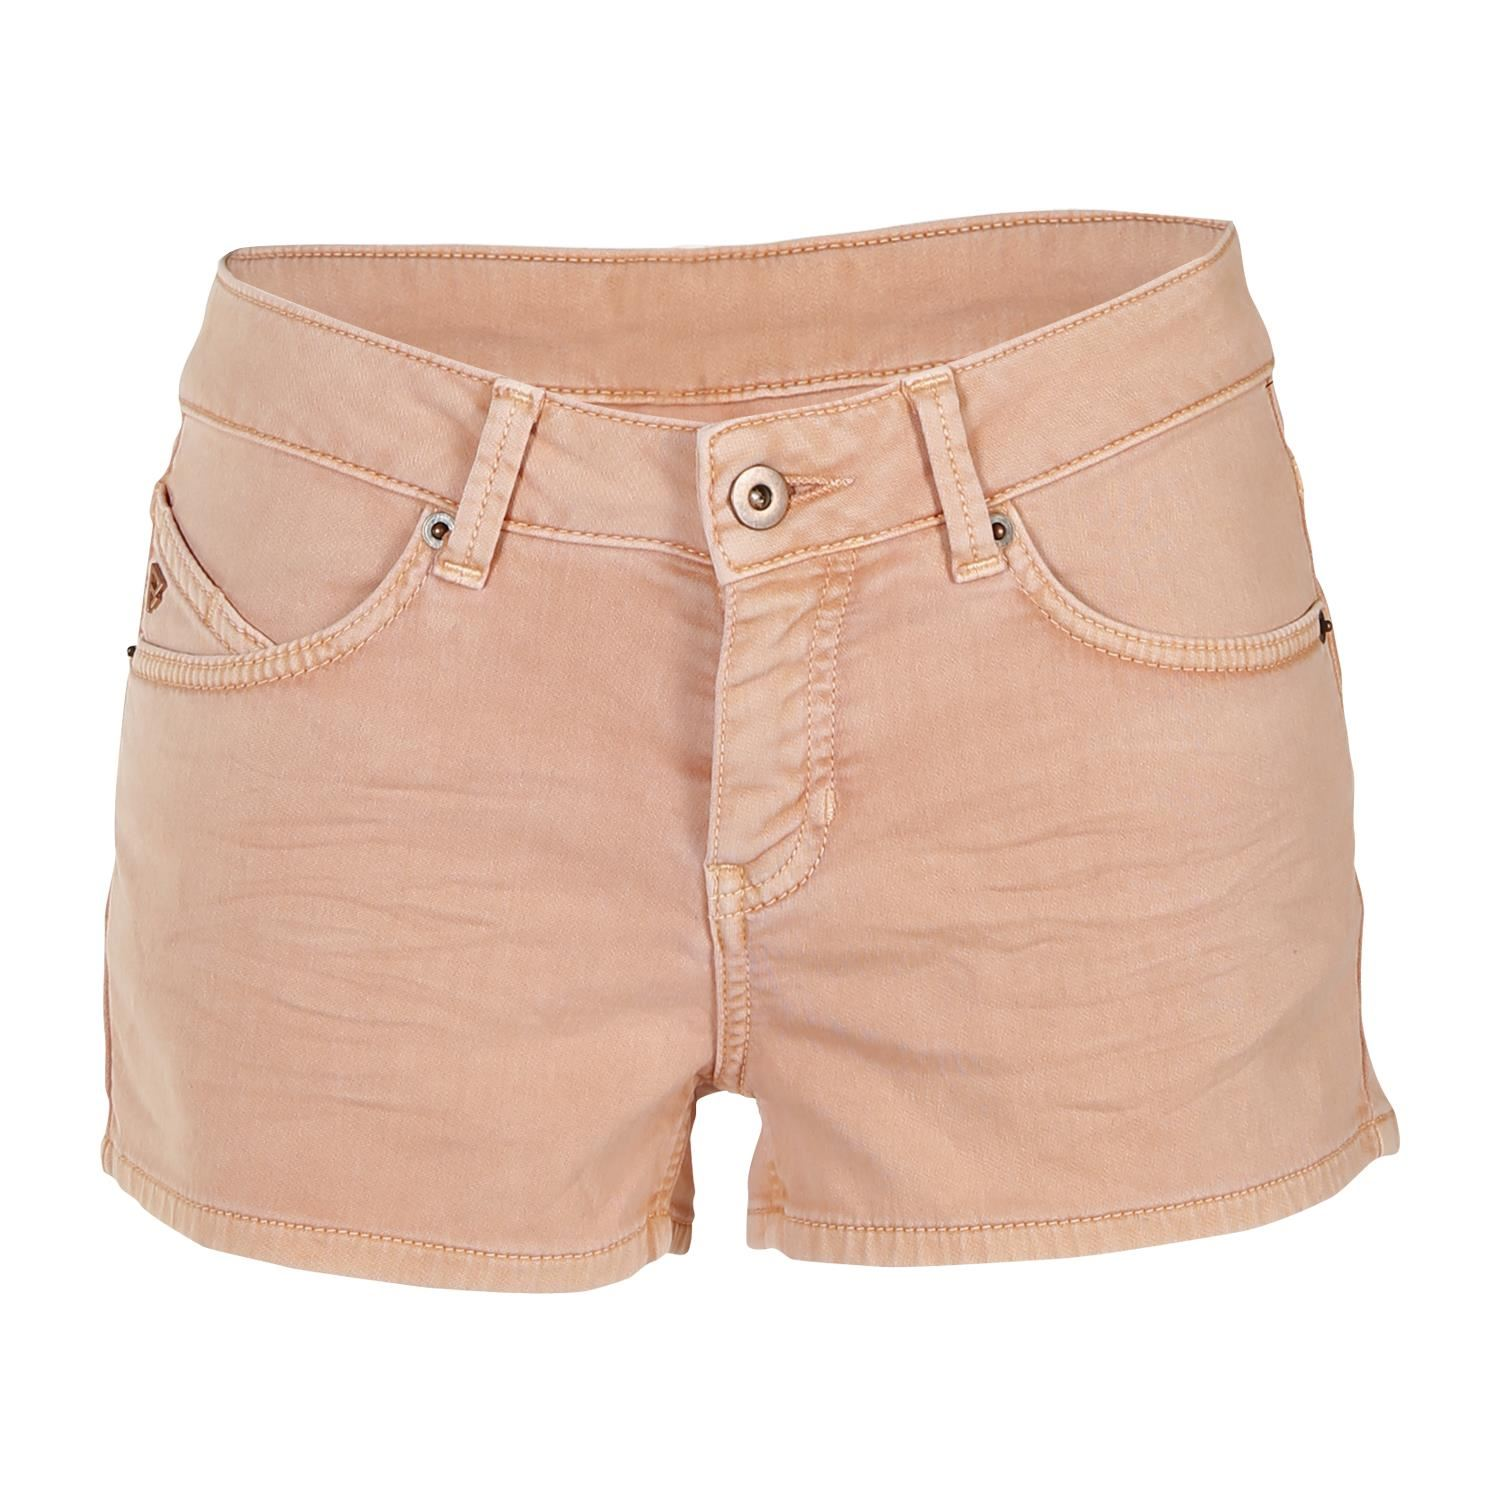 Brunotti Lara-Colour  (yellow) - women casual shorts - Brunotti online shop